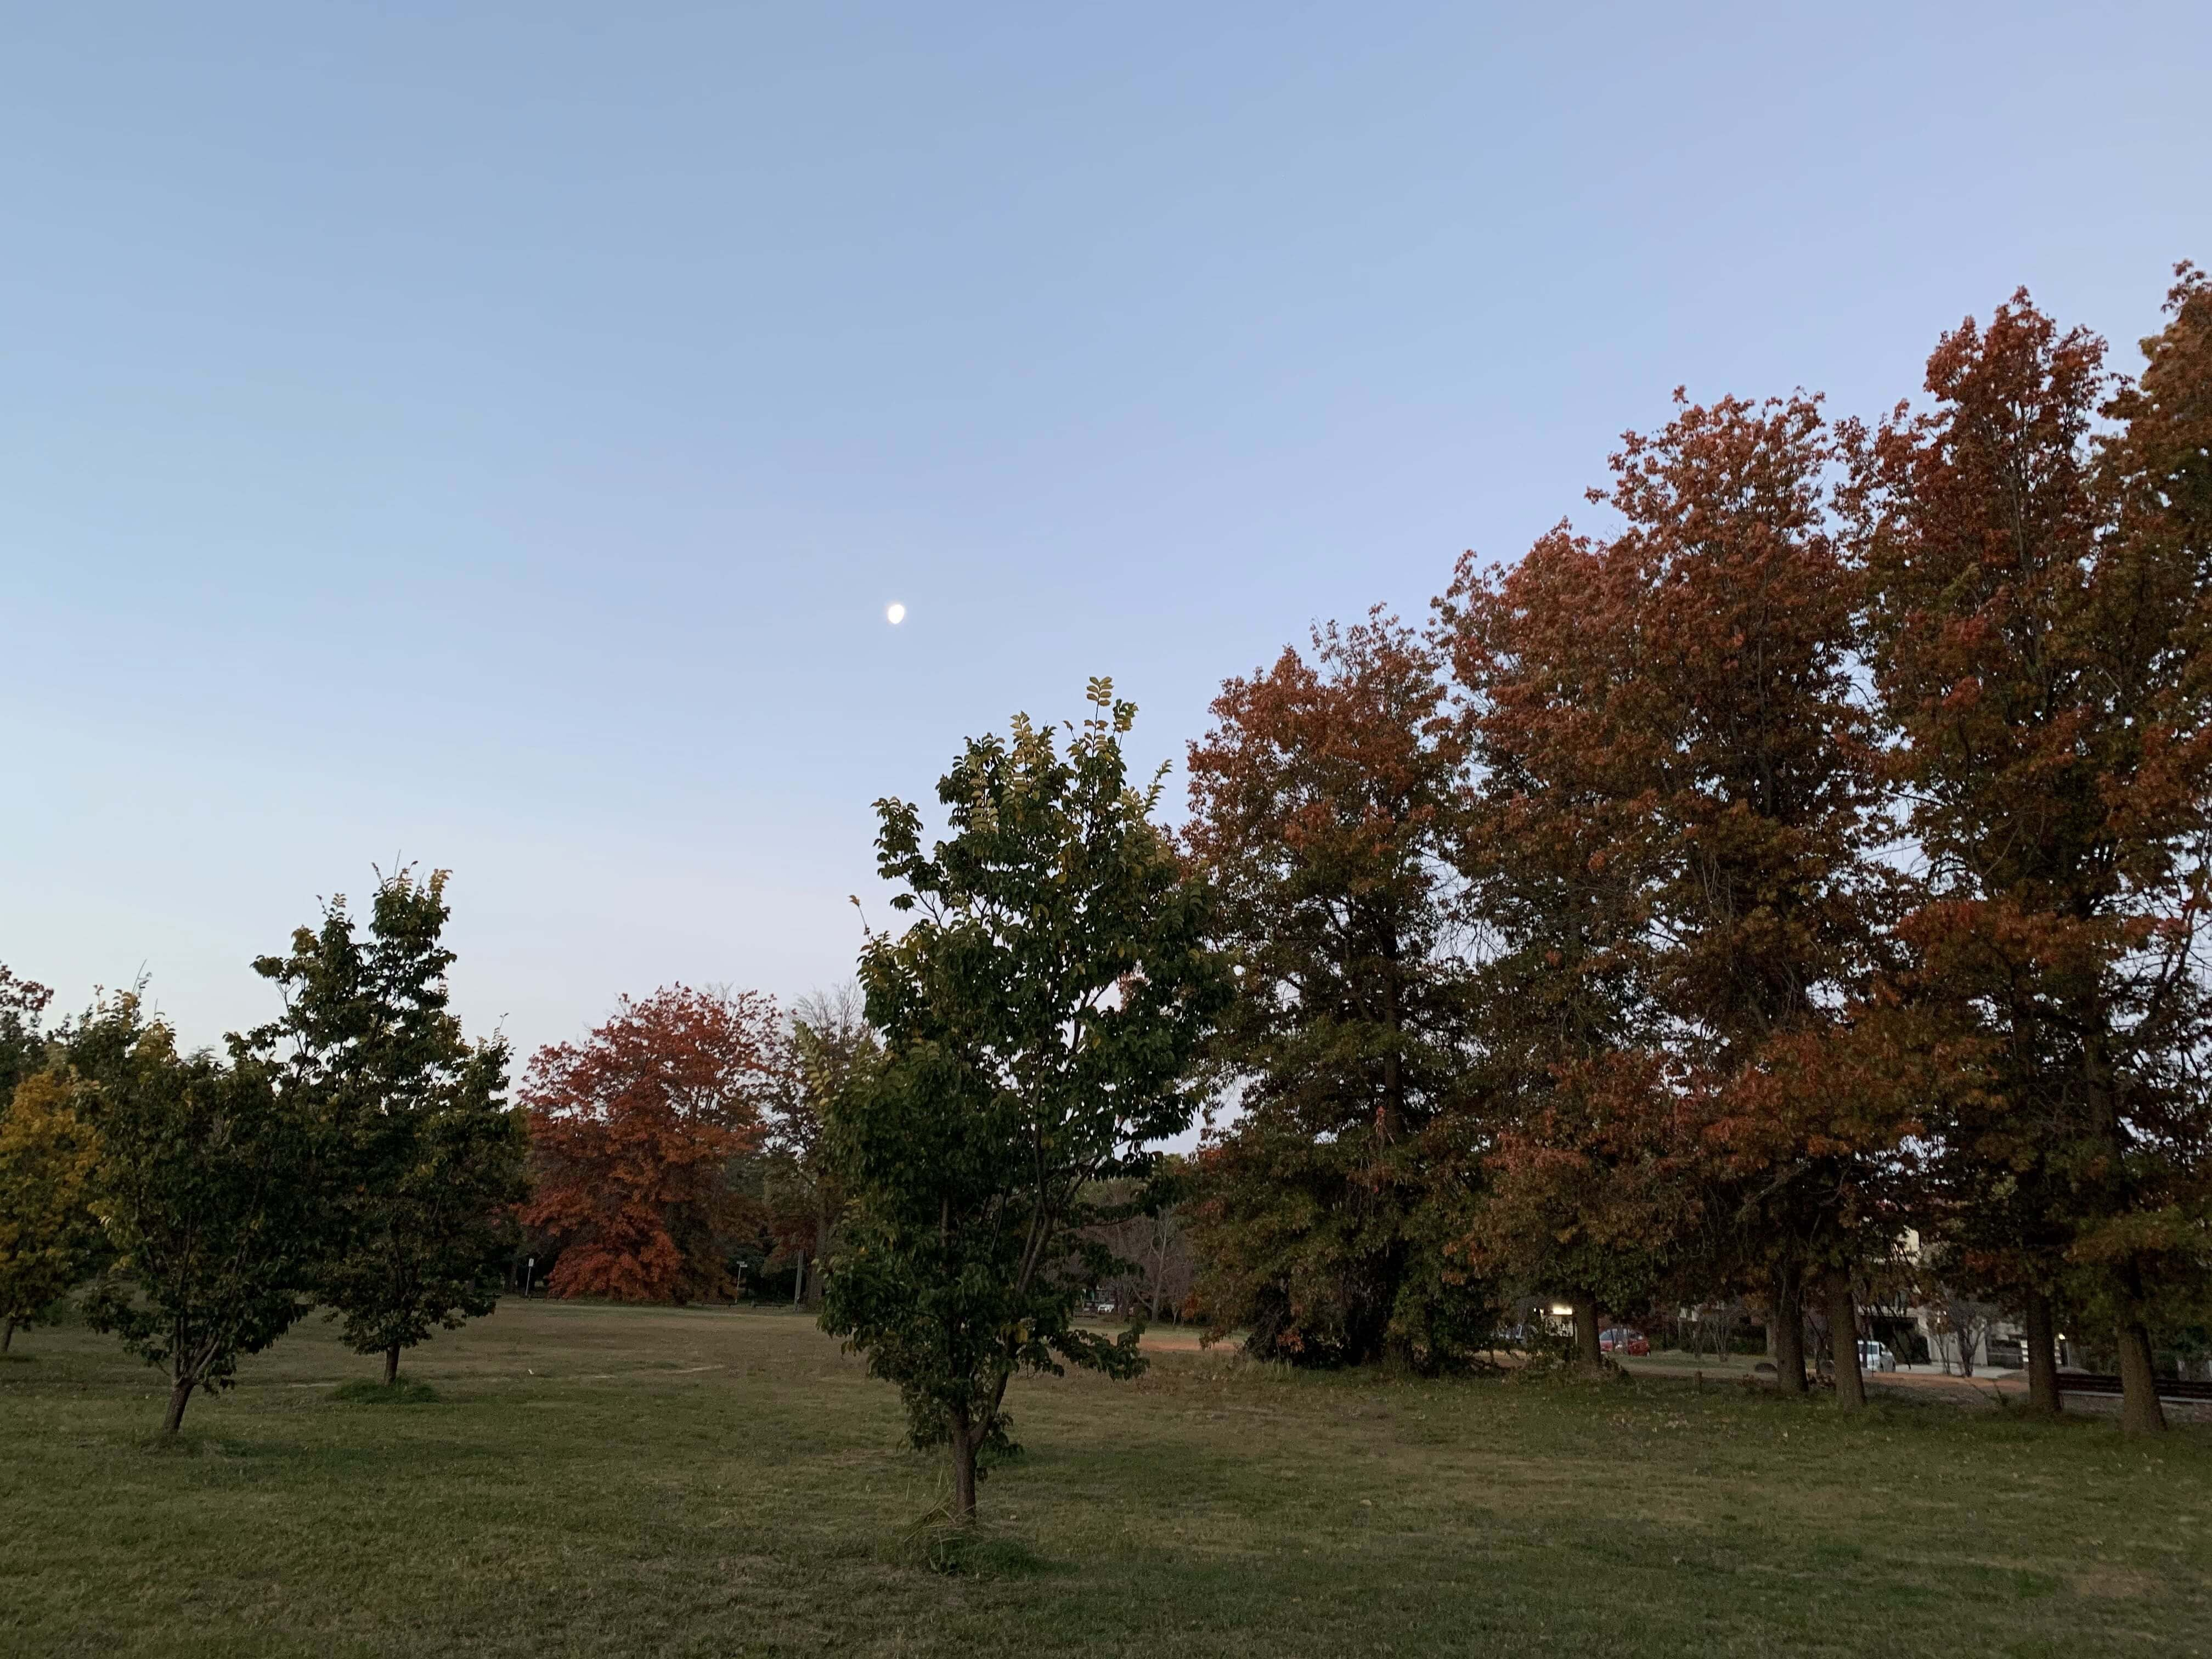 the moon and partly red, partly green autumn trees along the bike path